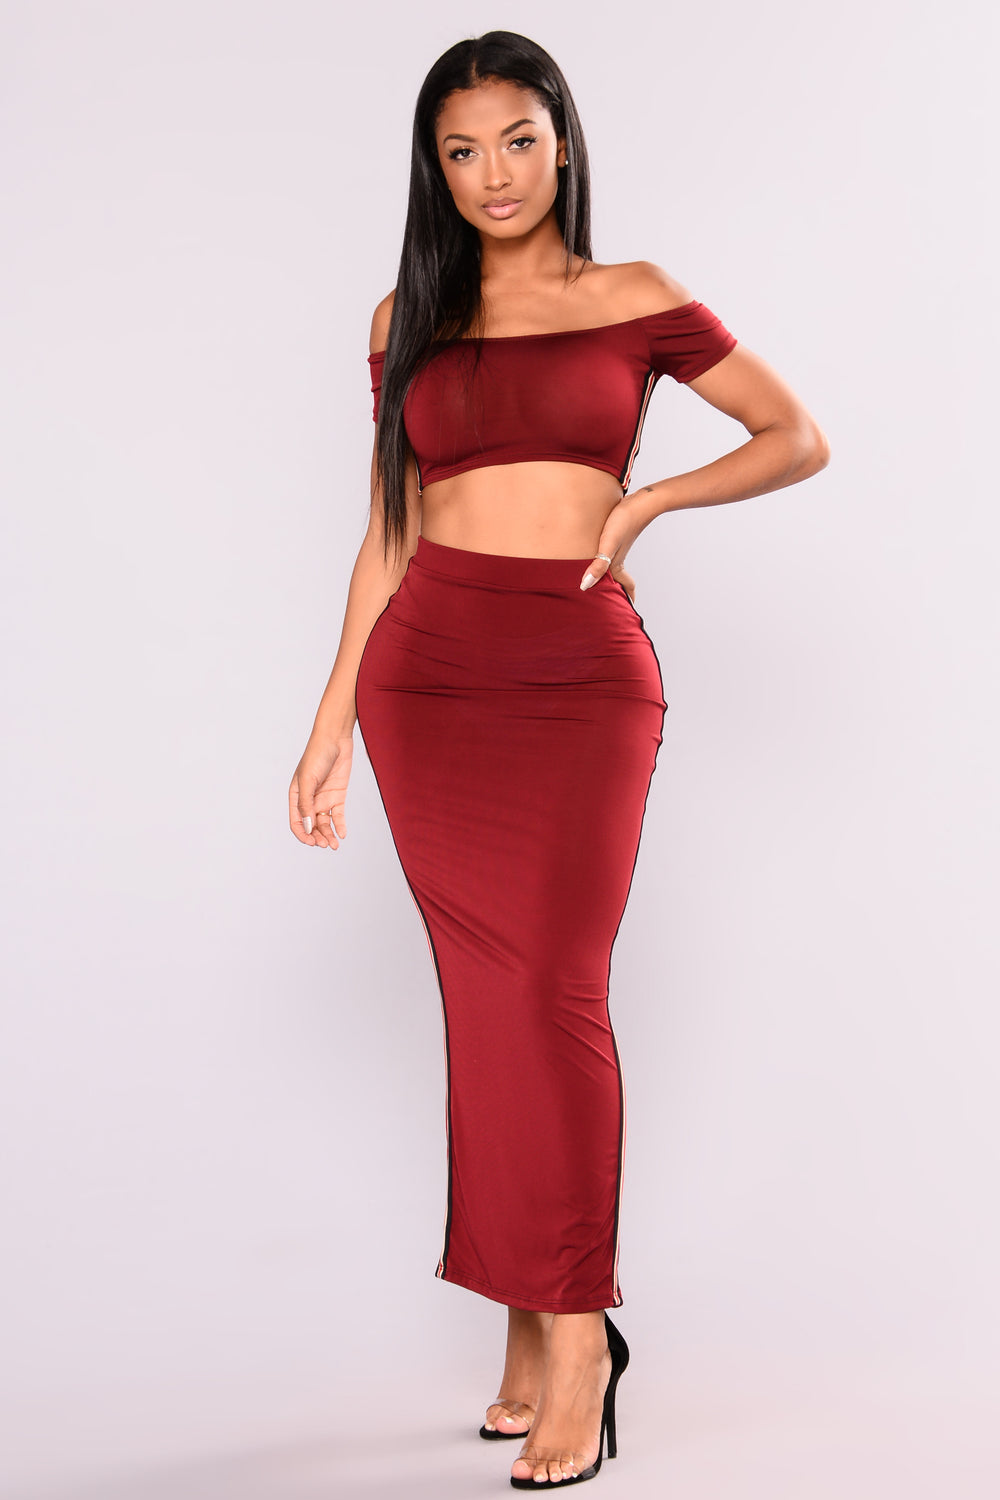 Above The Rest Skirt Set - Burgundy